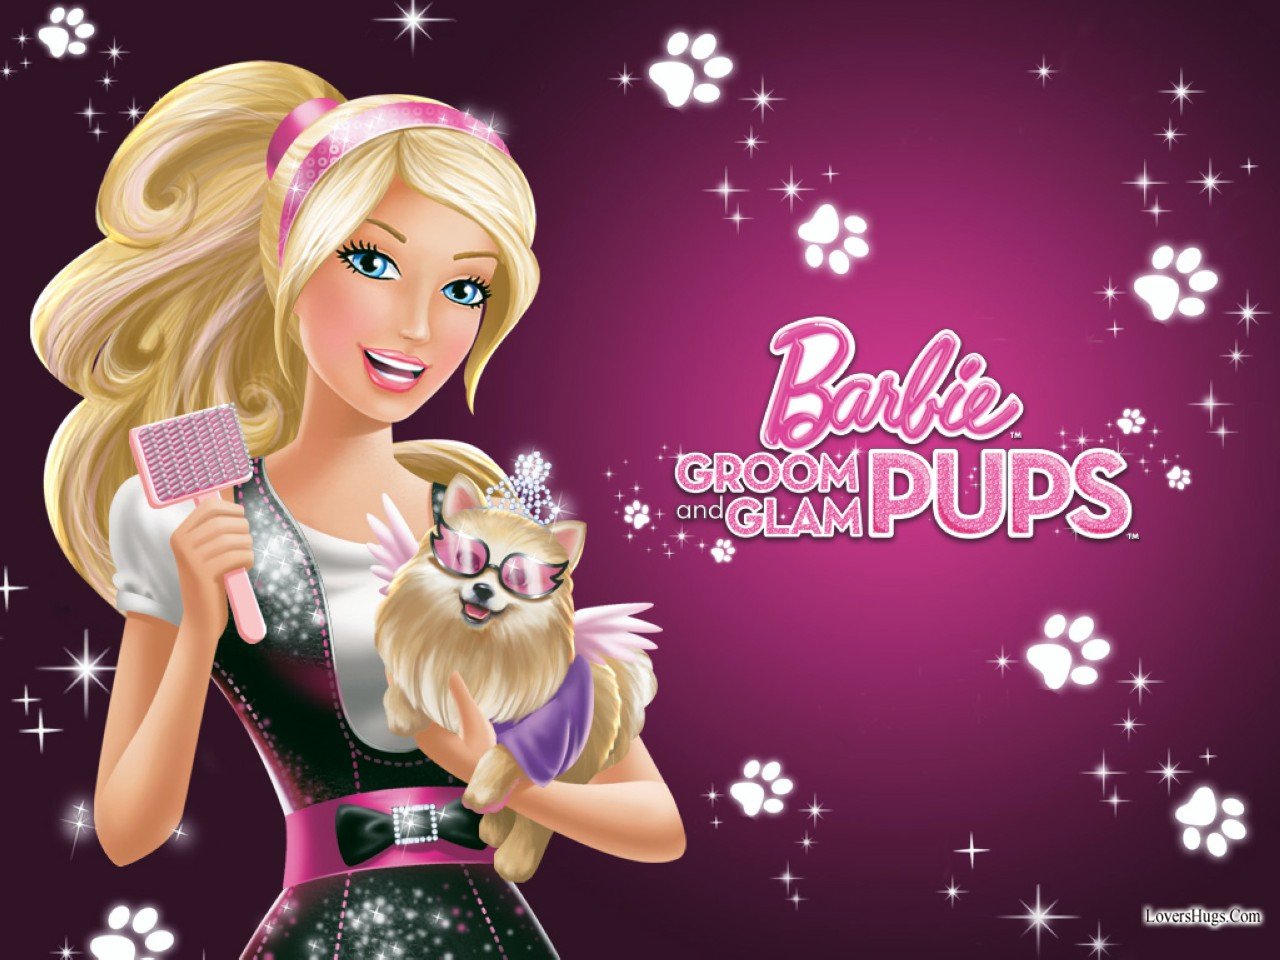 Barbie hd wallpapers - Barbie images for wallpaper ...